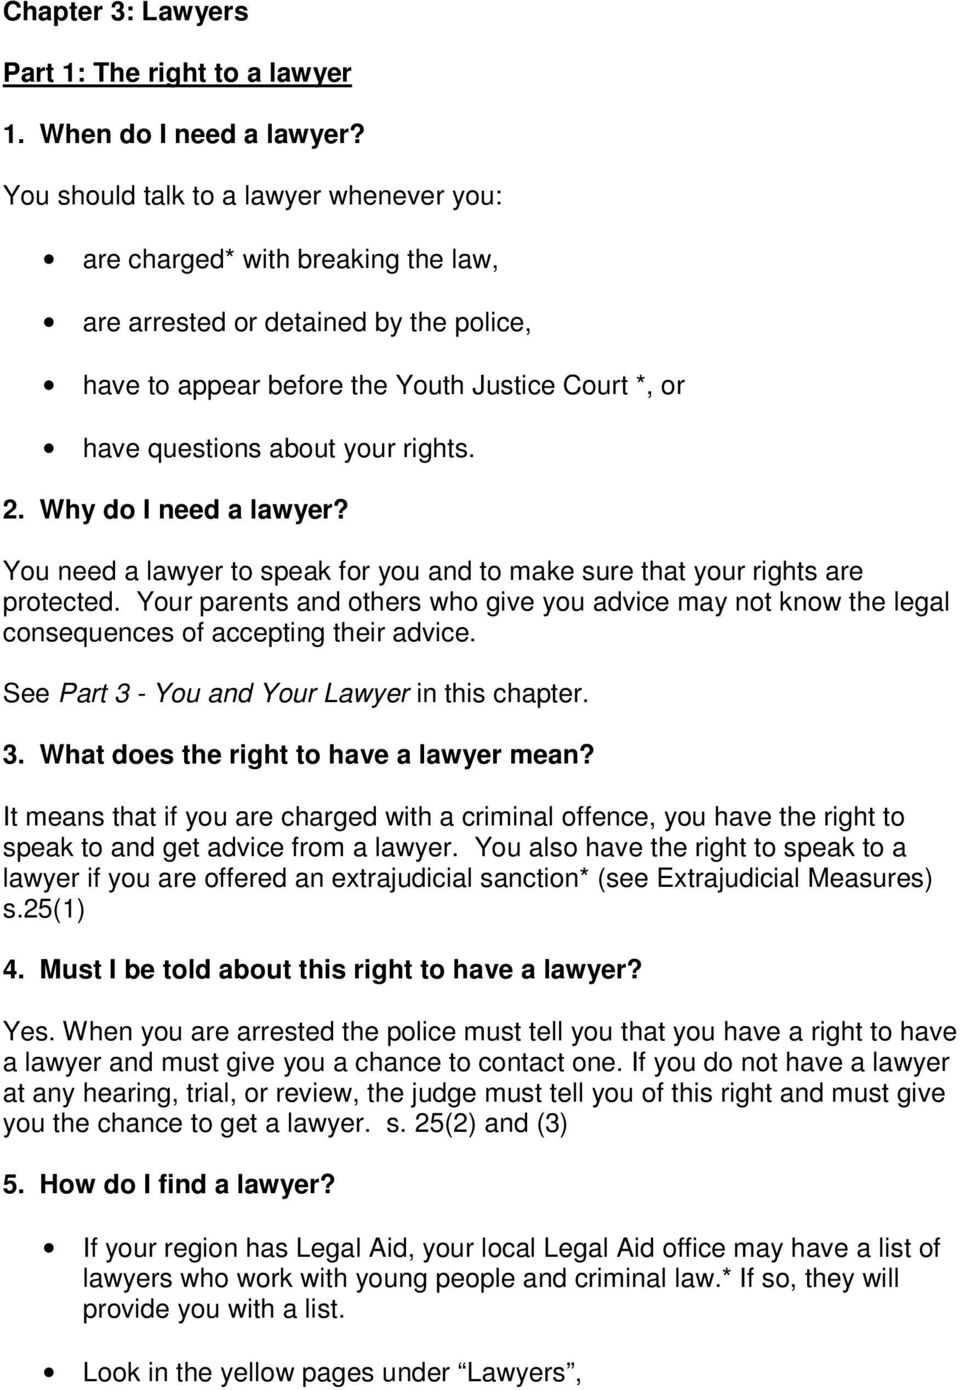 rights. 2. Why do I need a lawyer? You need a lawyer to speak for you and to make sure that your rights are protected.